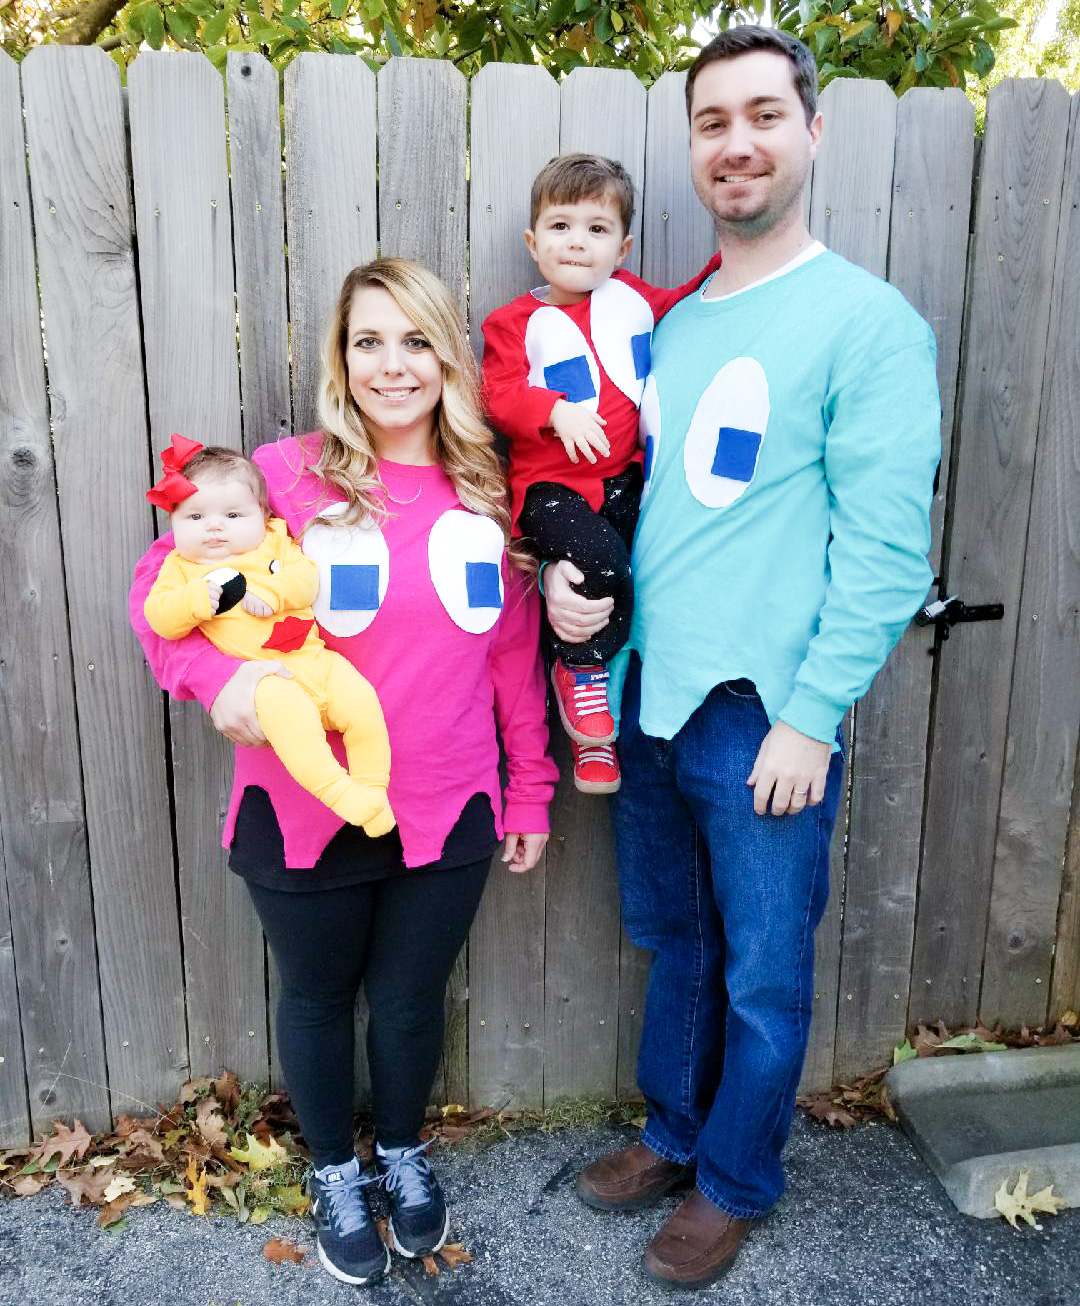 Ms. Pacman and Ghosts Costumes! Hereu0027s a DIY family Halloween costume idea that is  sc 1 st  COVET by tricia & Ms. Pac-Man and Ghosts Costumes [DIY Family Halloween] u2022 COVET by tricia